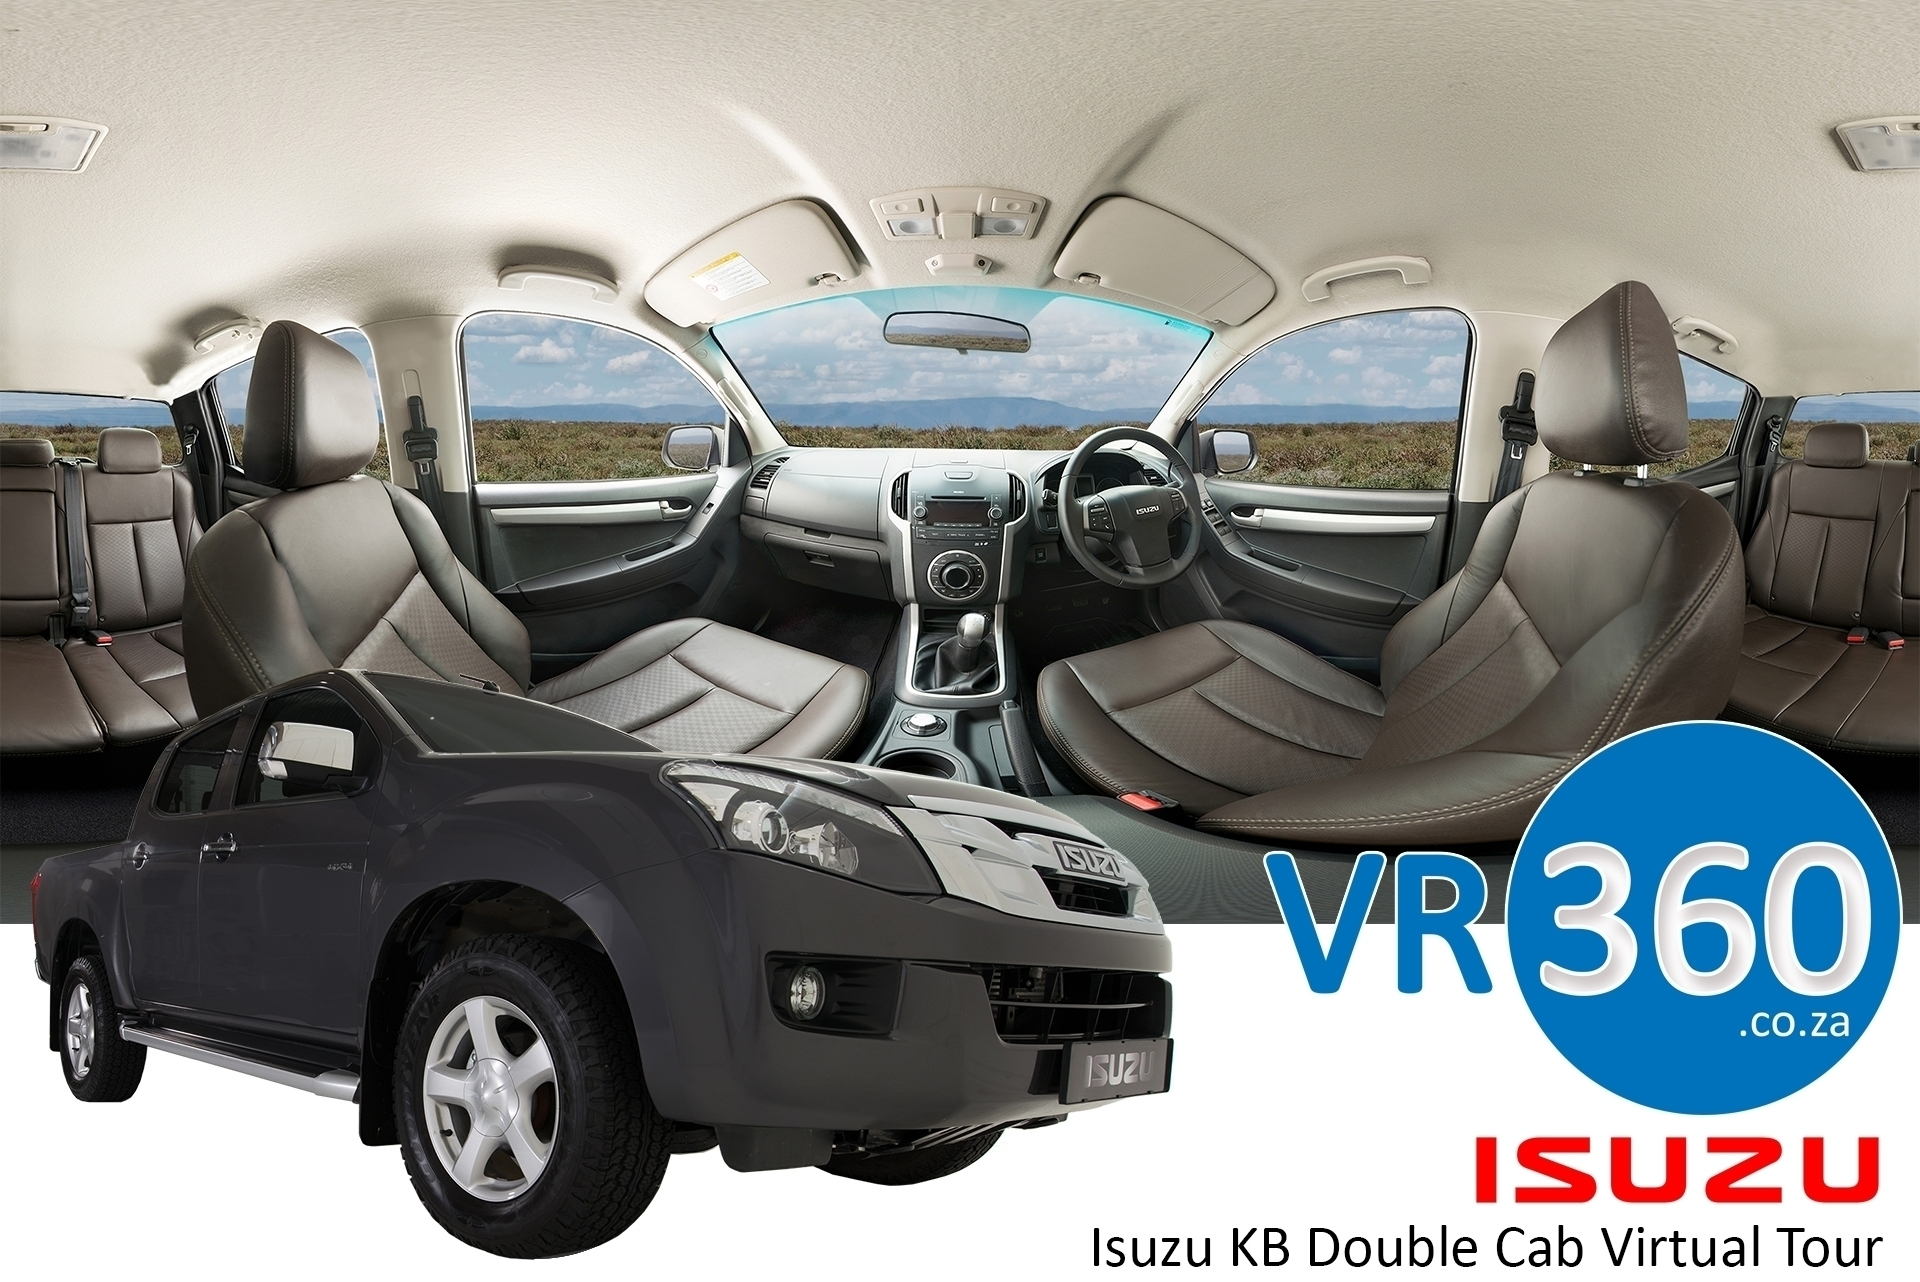 isuzu-kb-double-cab-virtual-tour